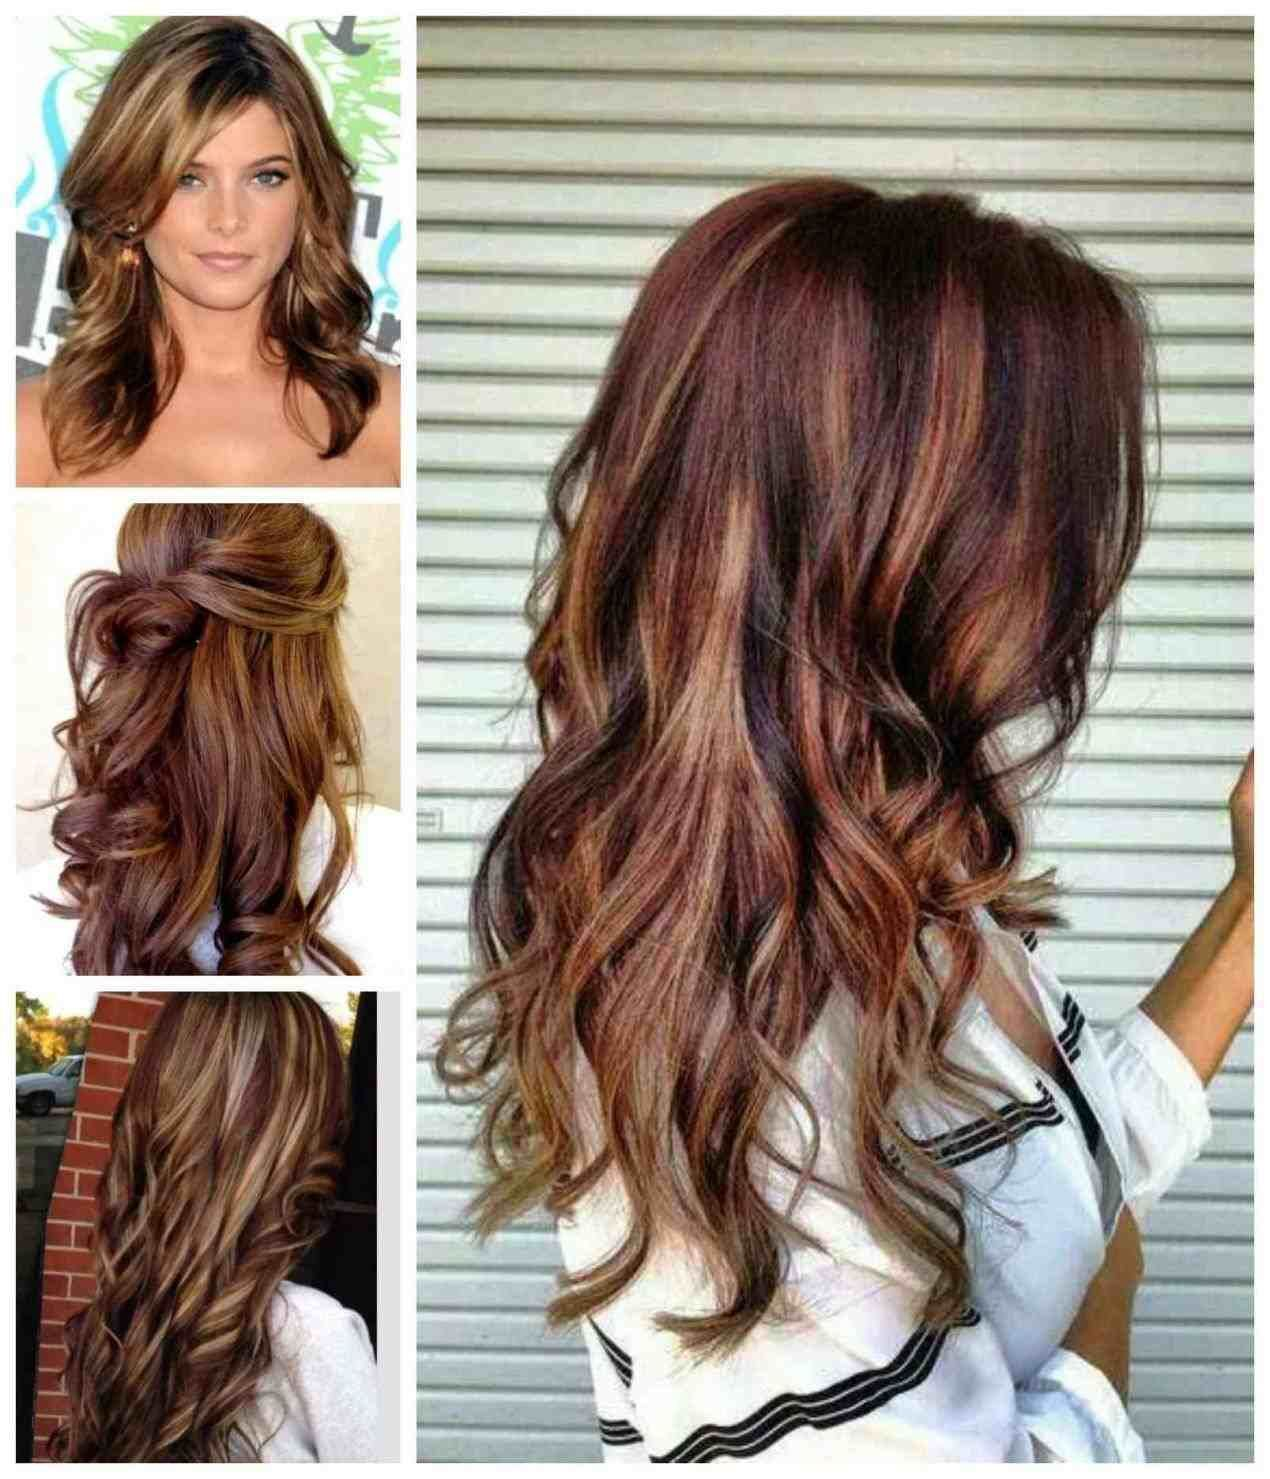 Ing Ed Cute Hair Color Ideas Tumblr Choice Image Ing Beautiful Dye Ing Dark Red Gallery Find T Hair Highlights Red Highlights In Brown Hair Blonde Highlights